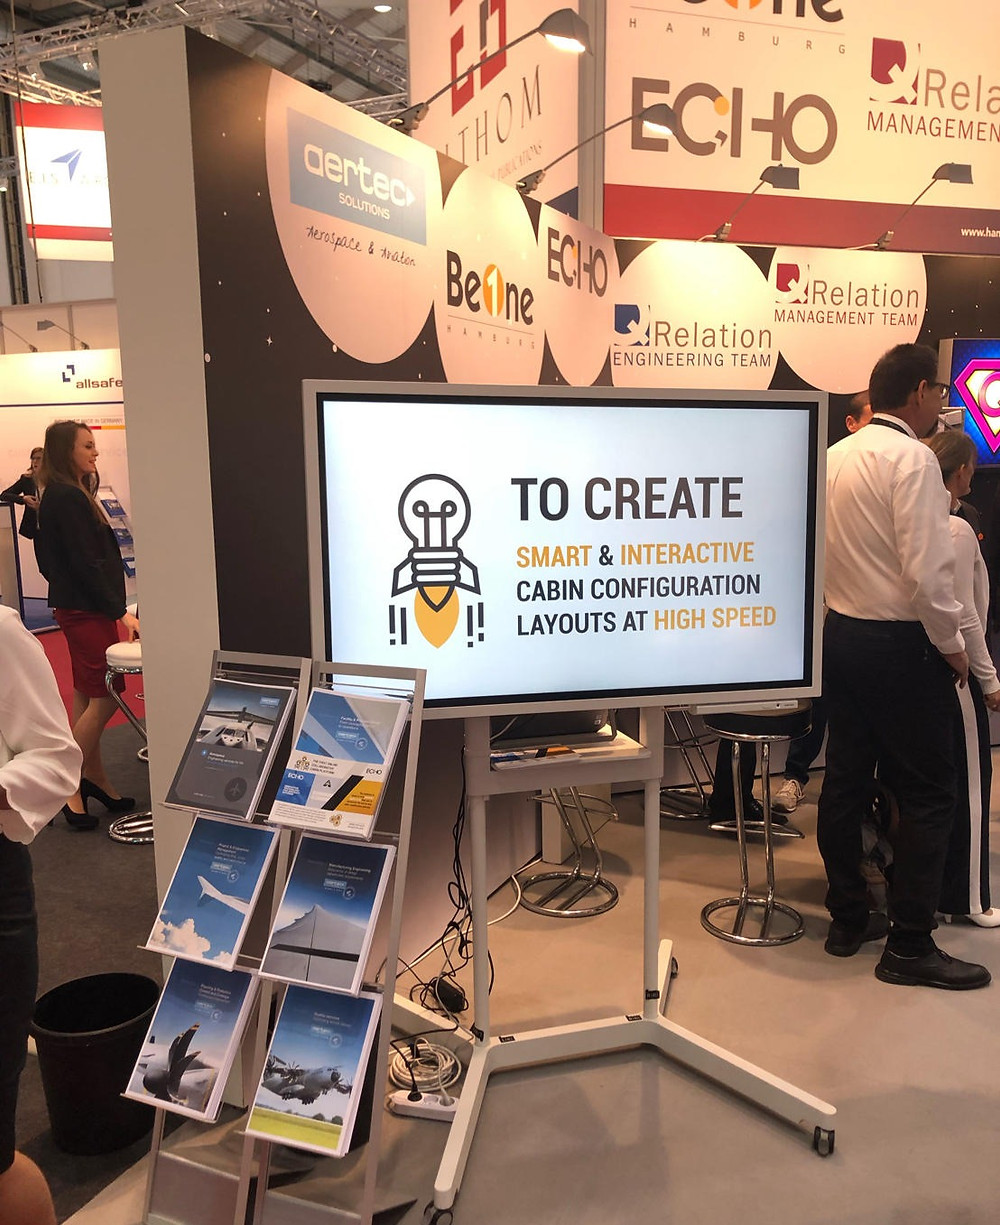 Echo Surprising The Cabin Community At The Aircraft Interior Expo 2019